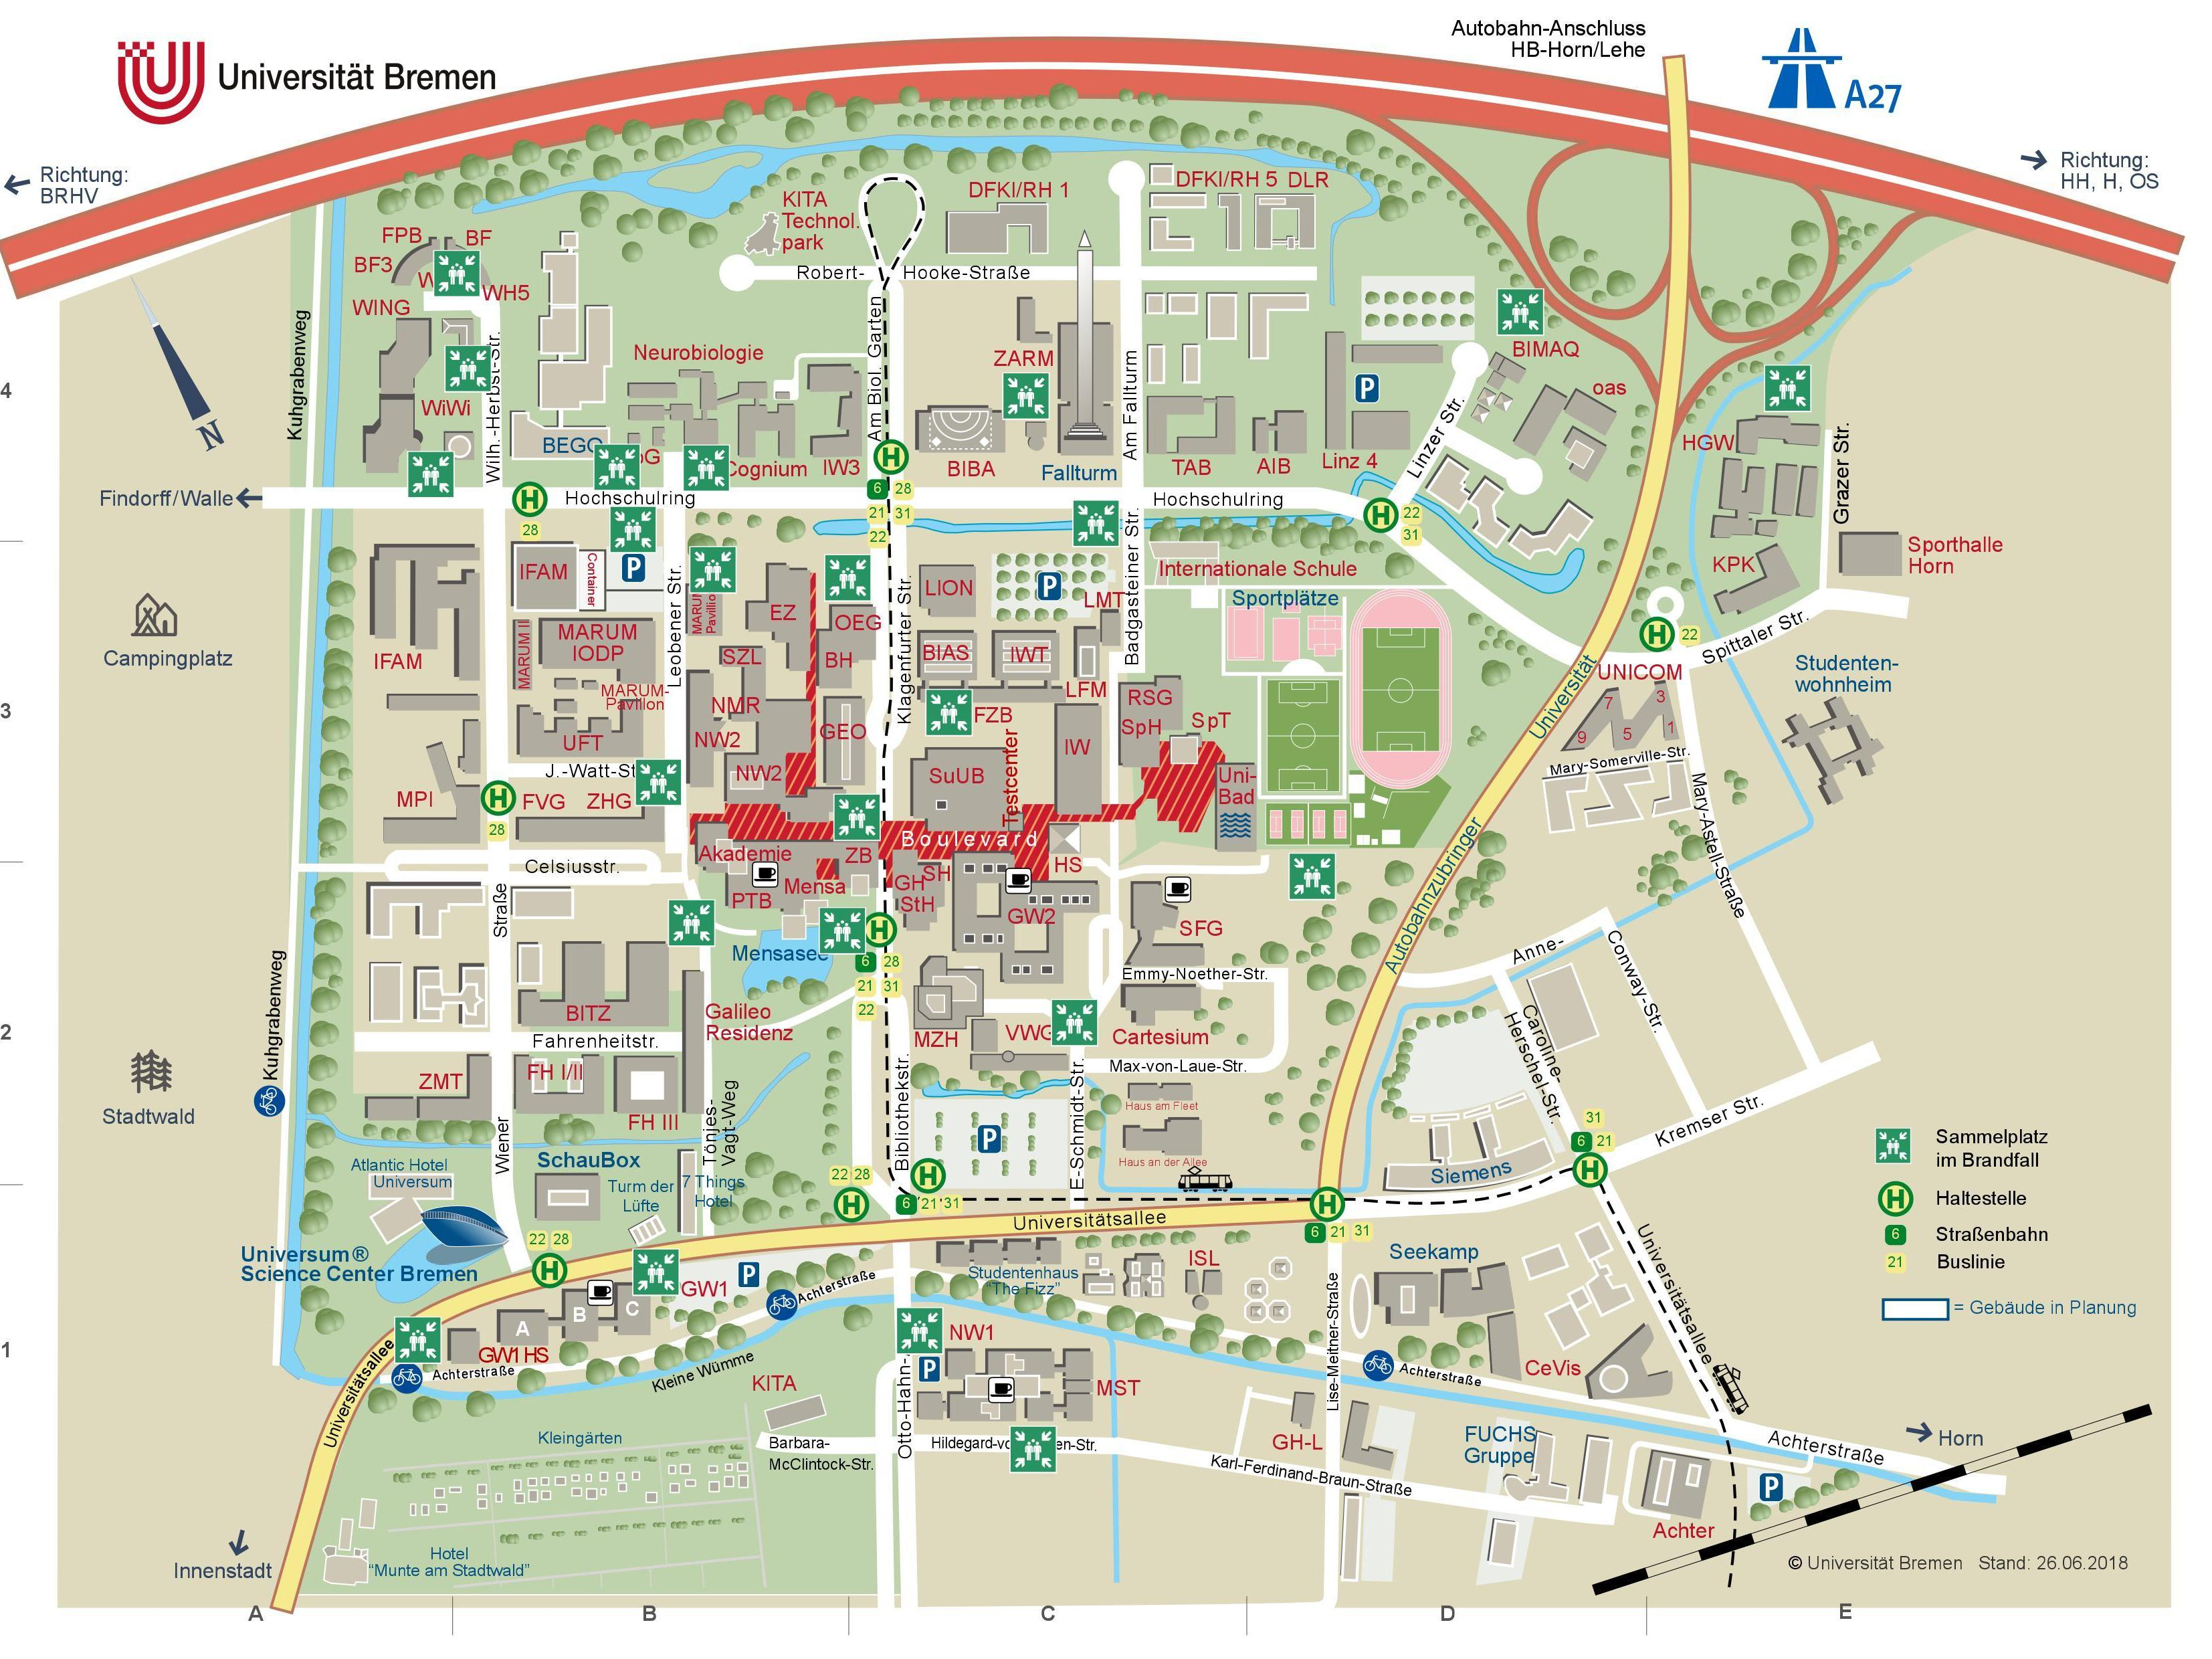 A map of the campus with all the gathering places in case of emergency